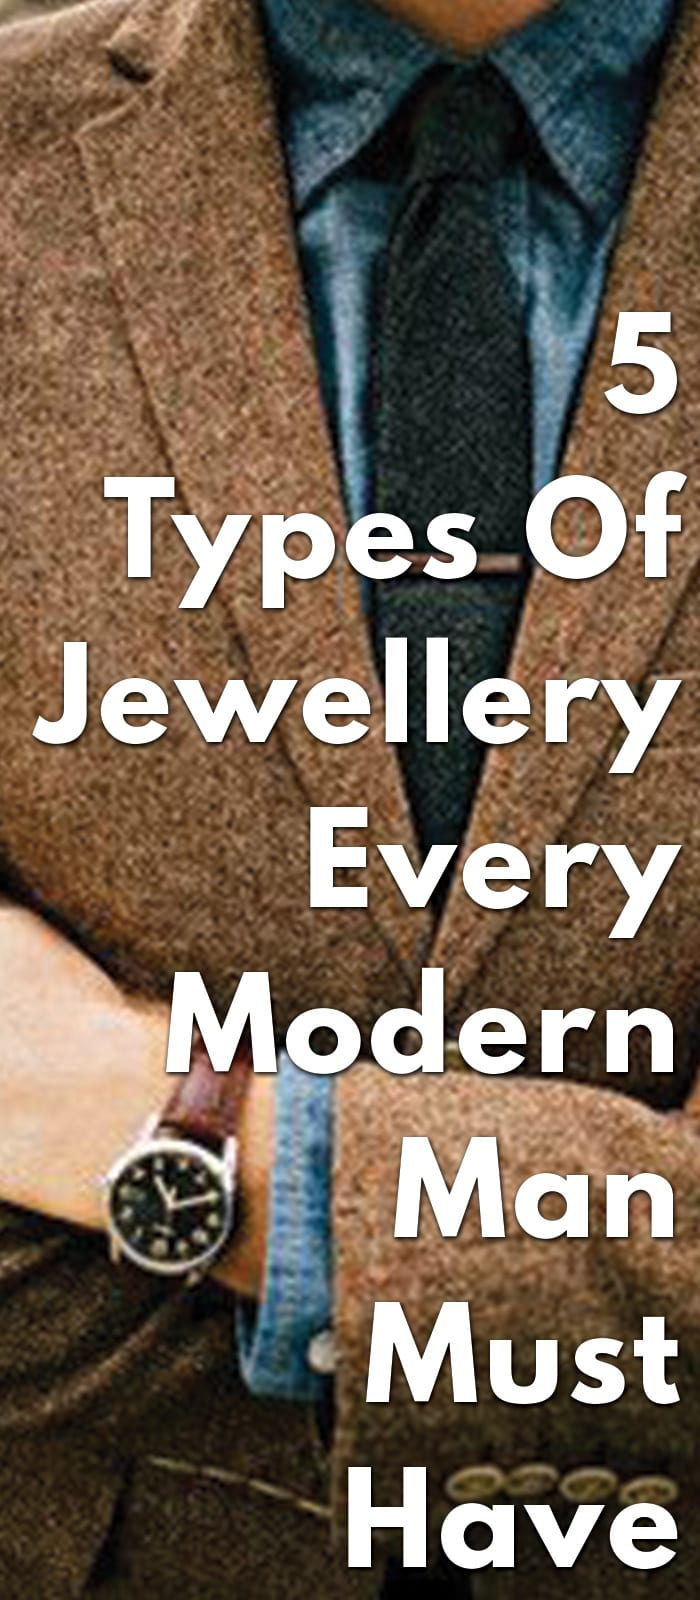 5-Types-Of-Jewellery-Every-Modern-Man-Must-Have